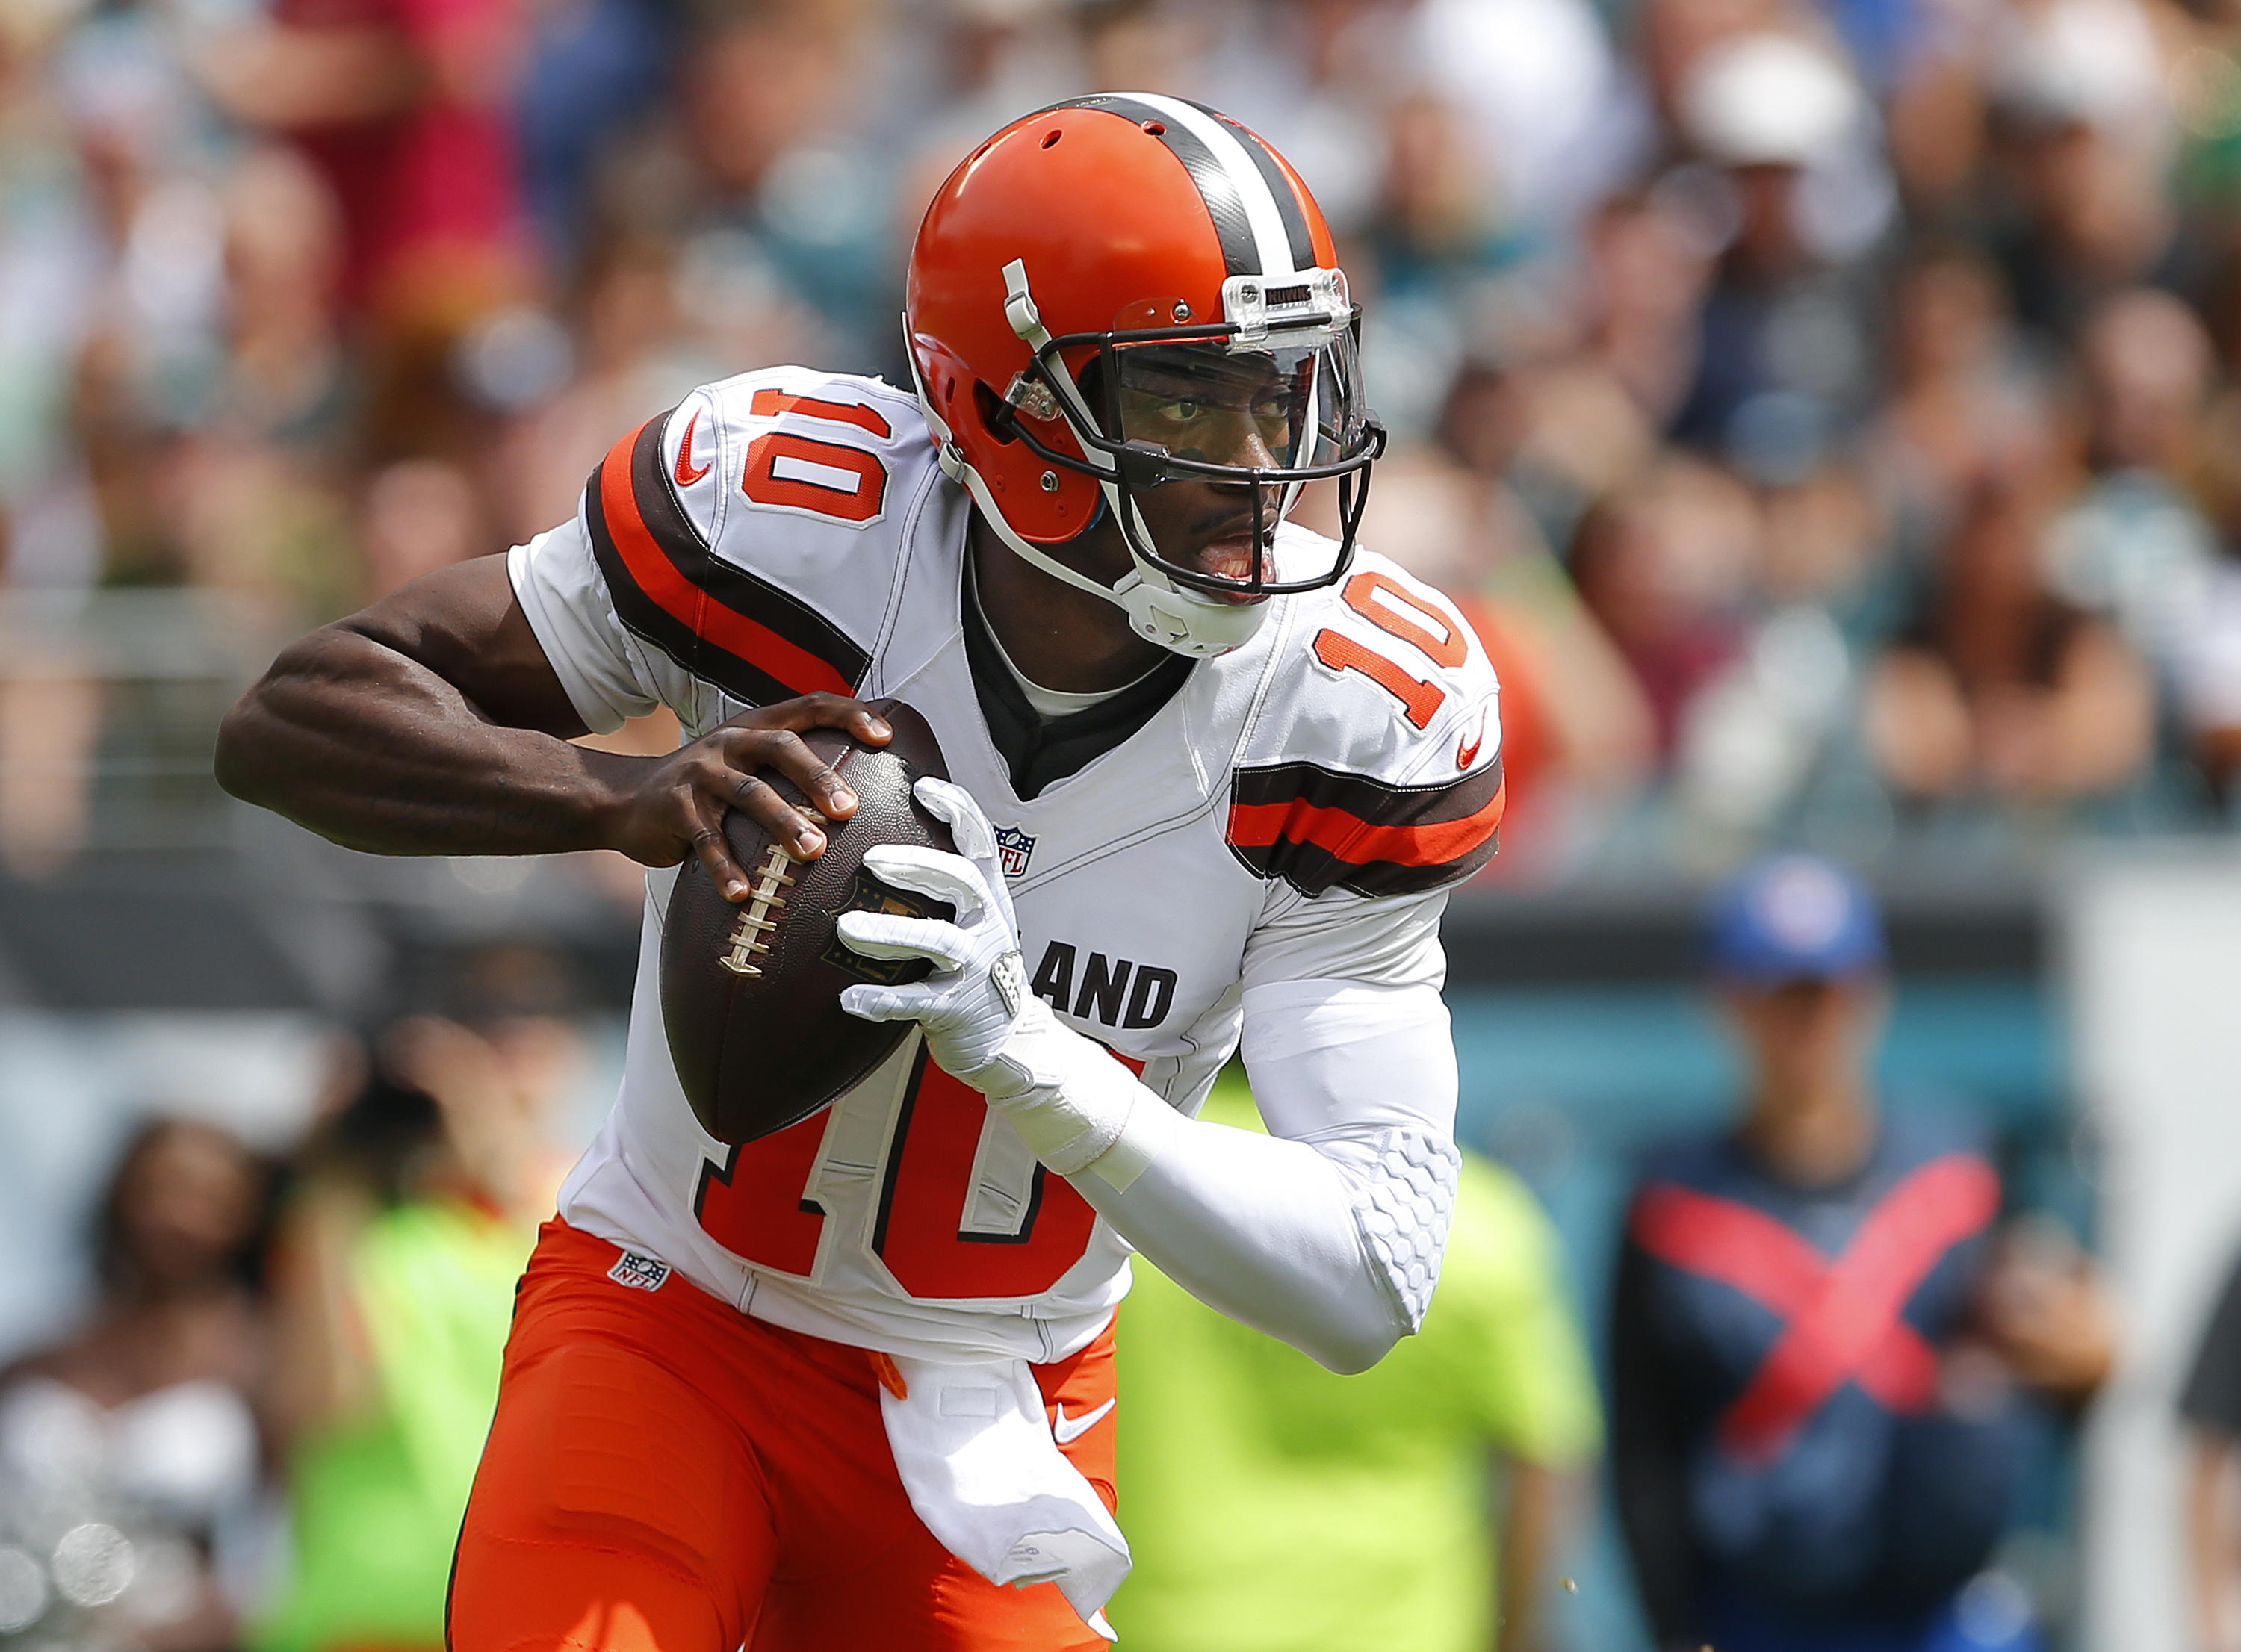 Cleveland Browns: Robert Griffin III's Debut Mirrors Career